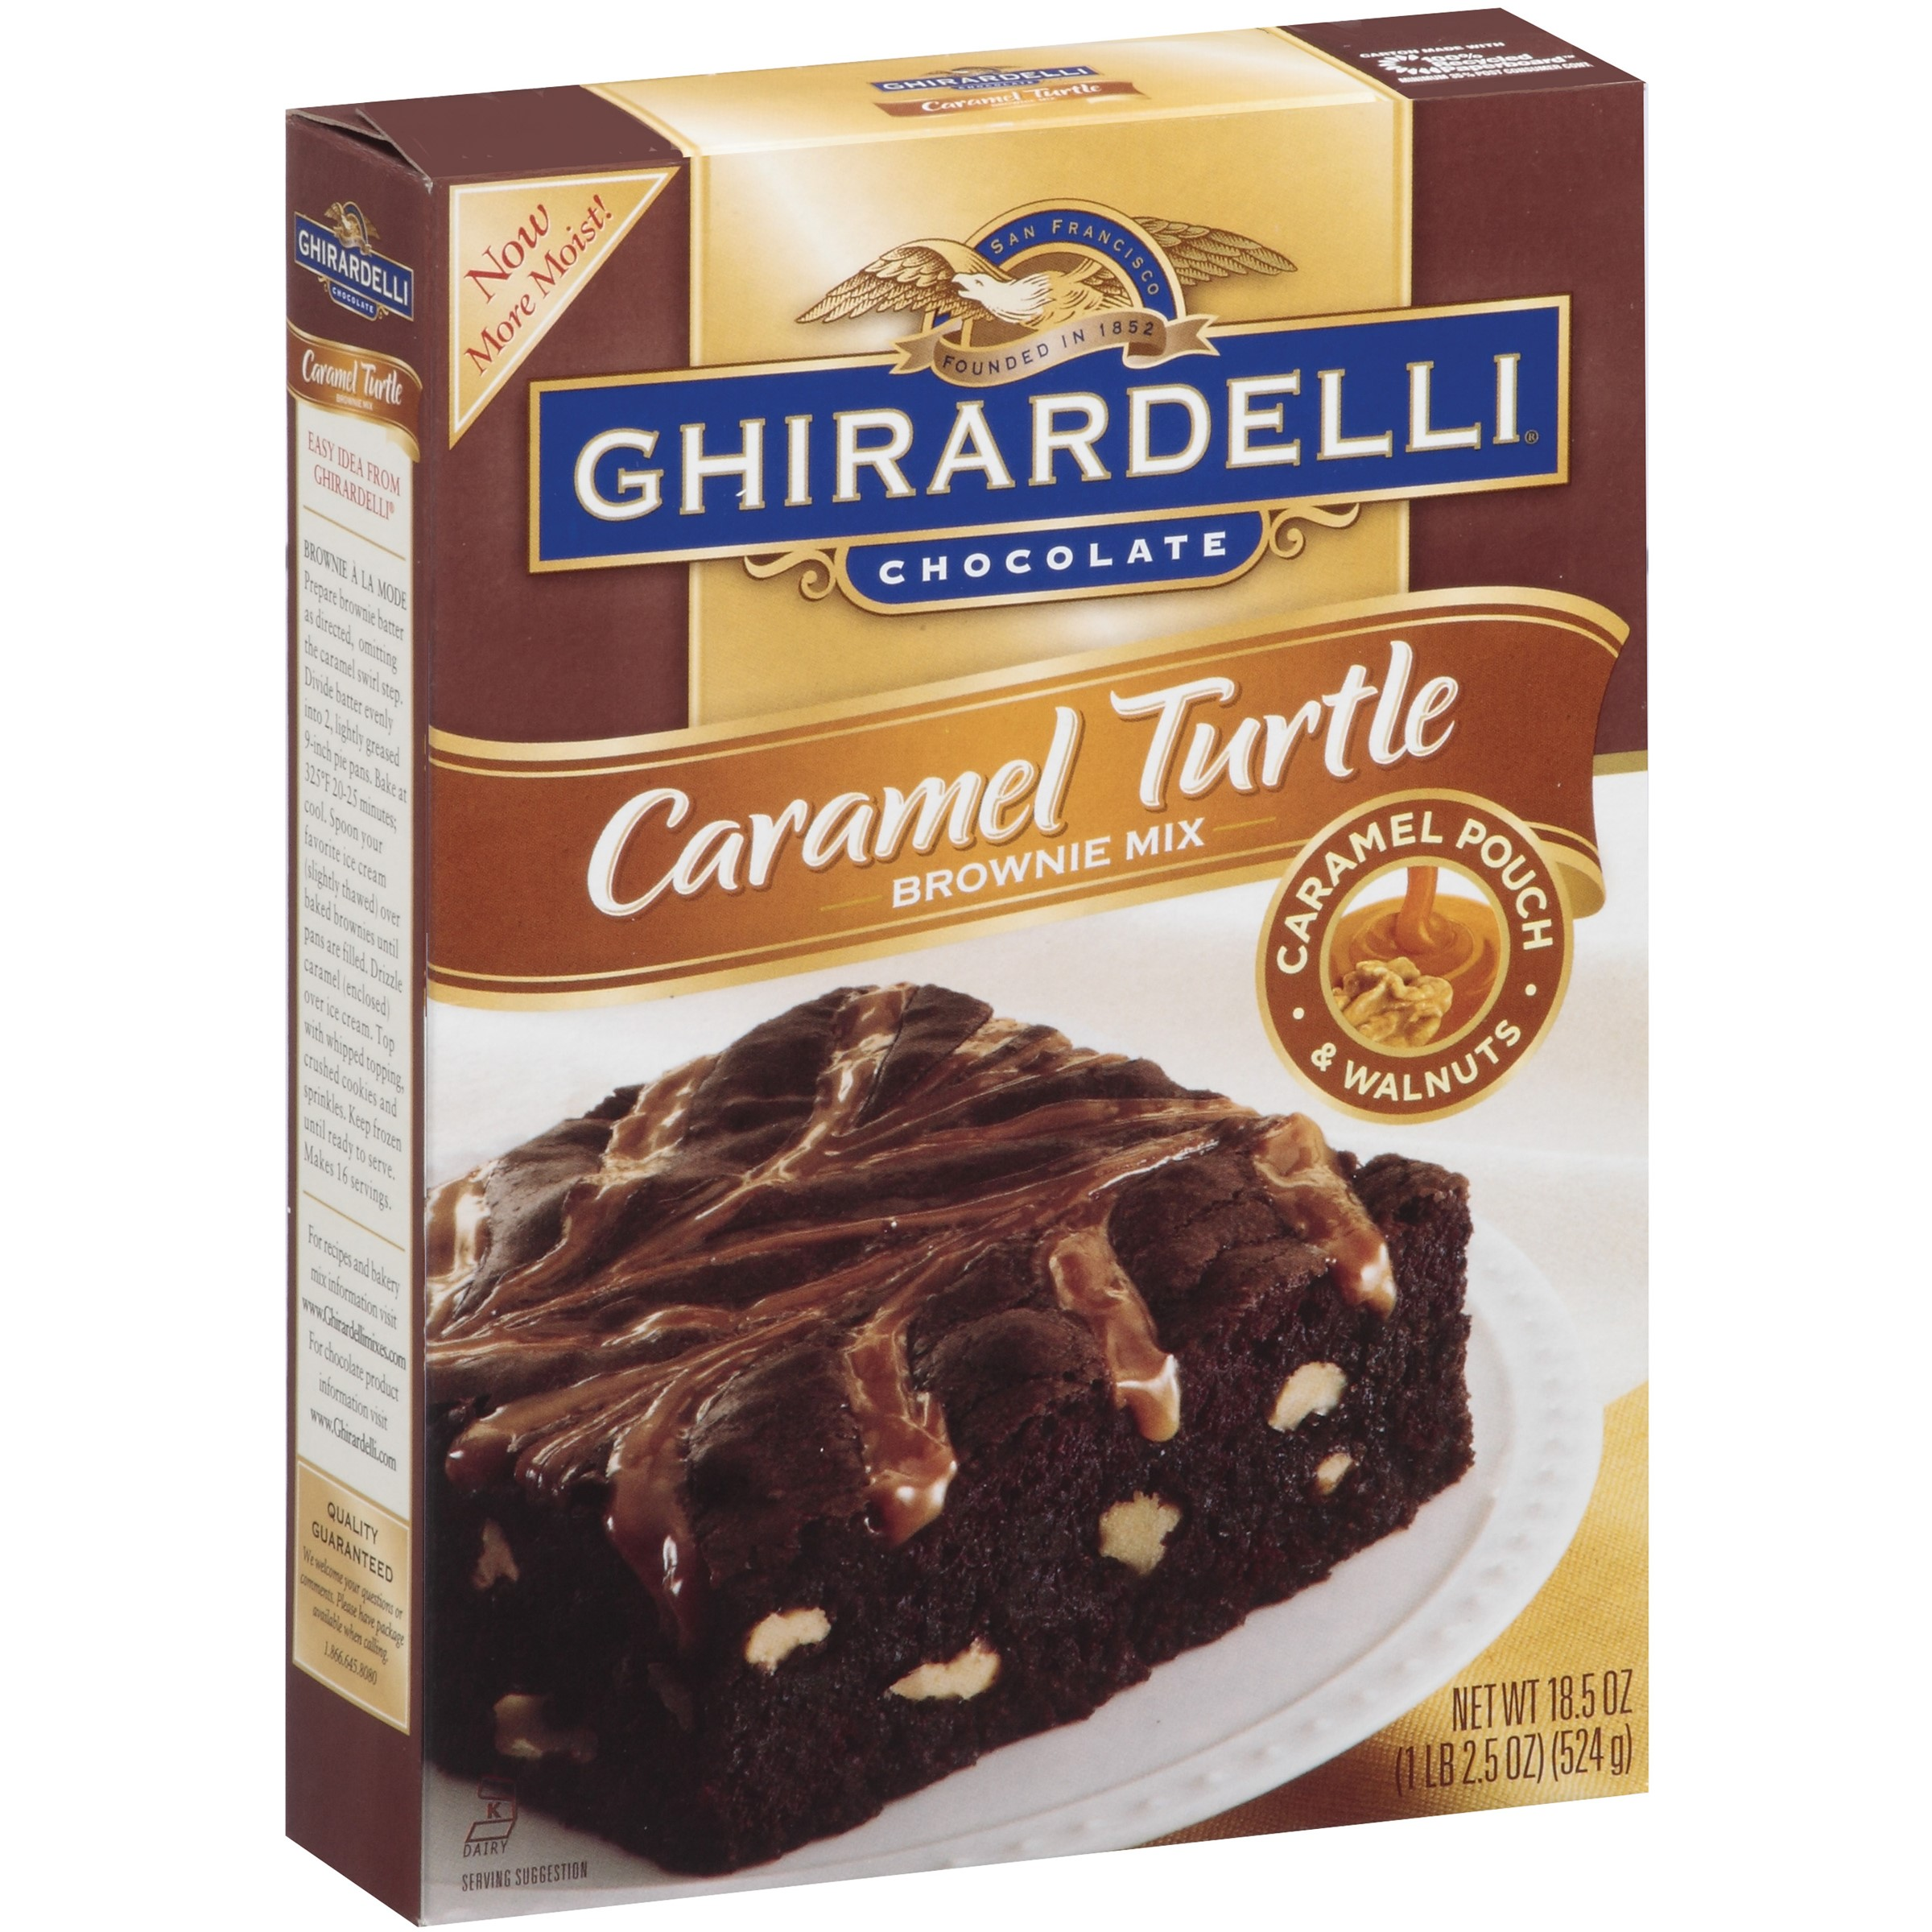 (4 Pack) Ghirardelli Chocolate Caramel Turtle Brownie Mix, 18.5 oz